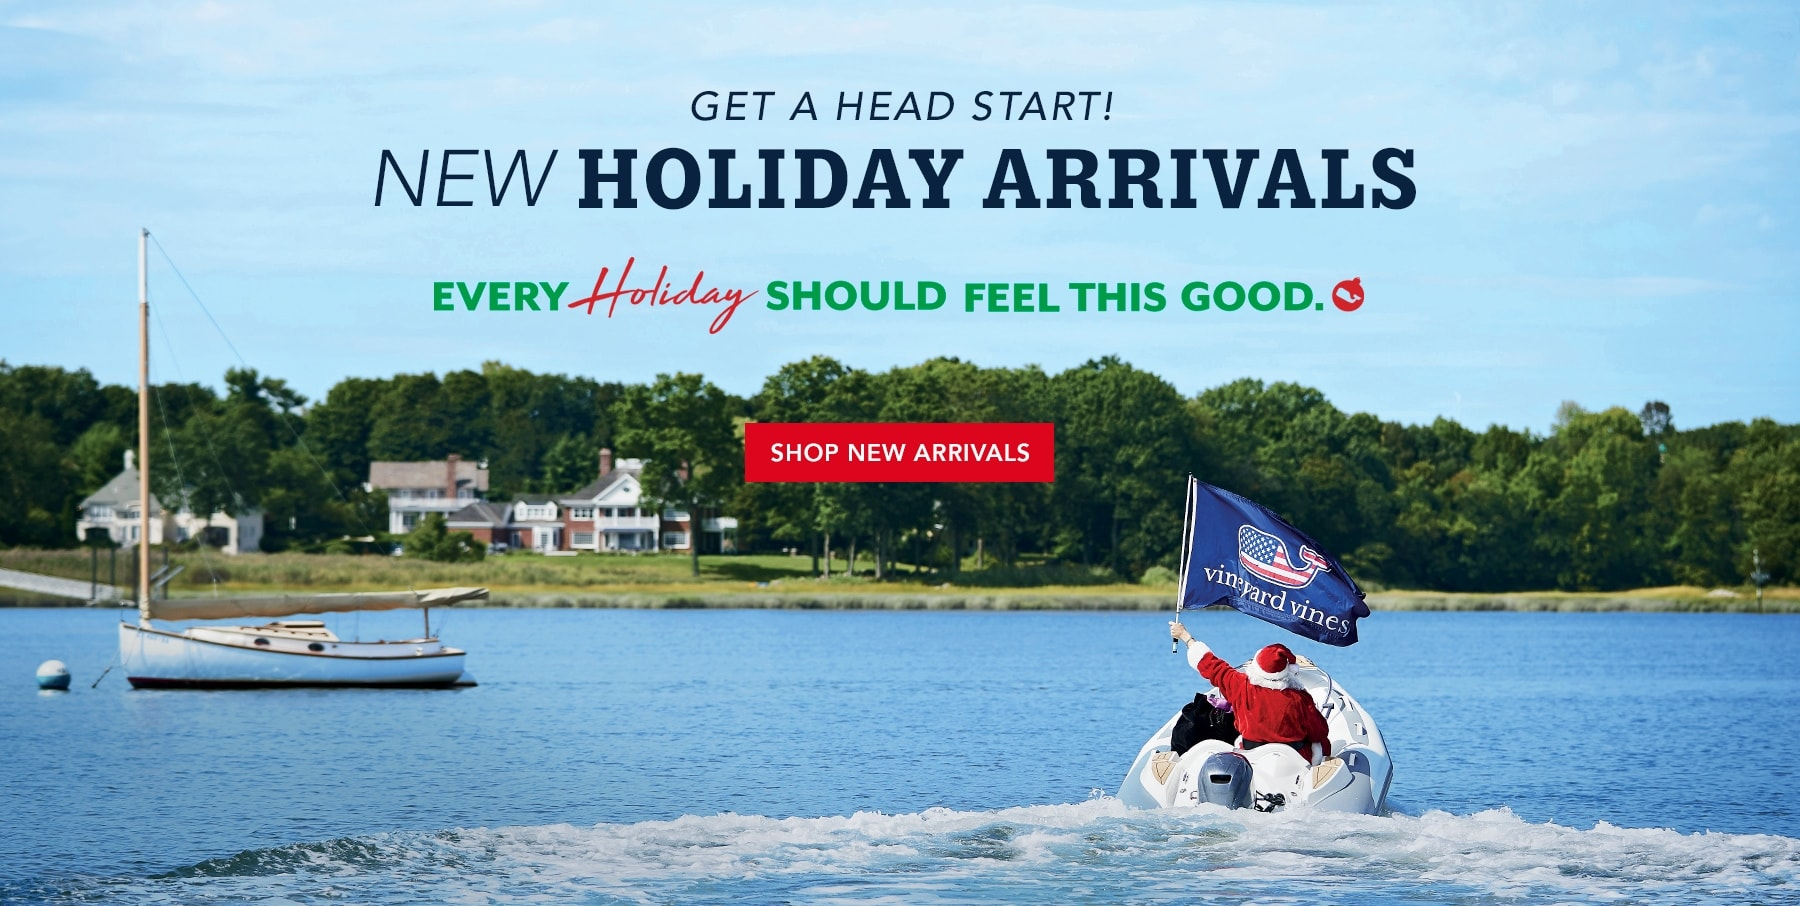 New holiday arrivals fill your boat. Every holiday should feel this good. Shop new arrivals.